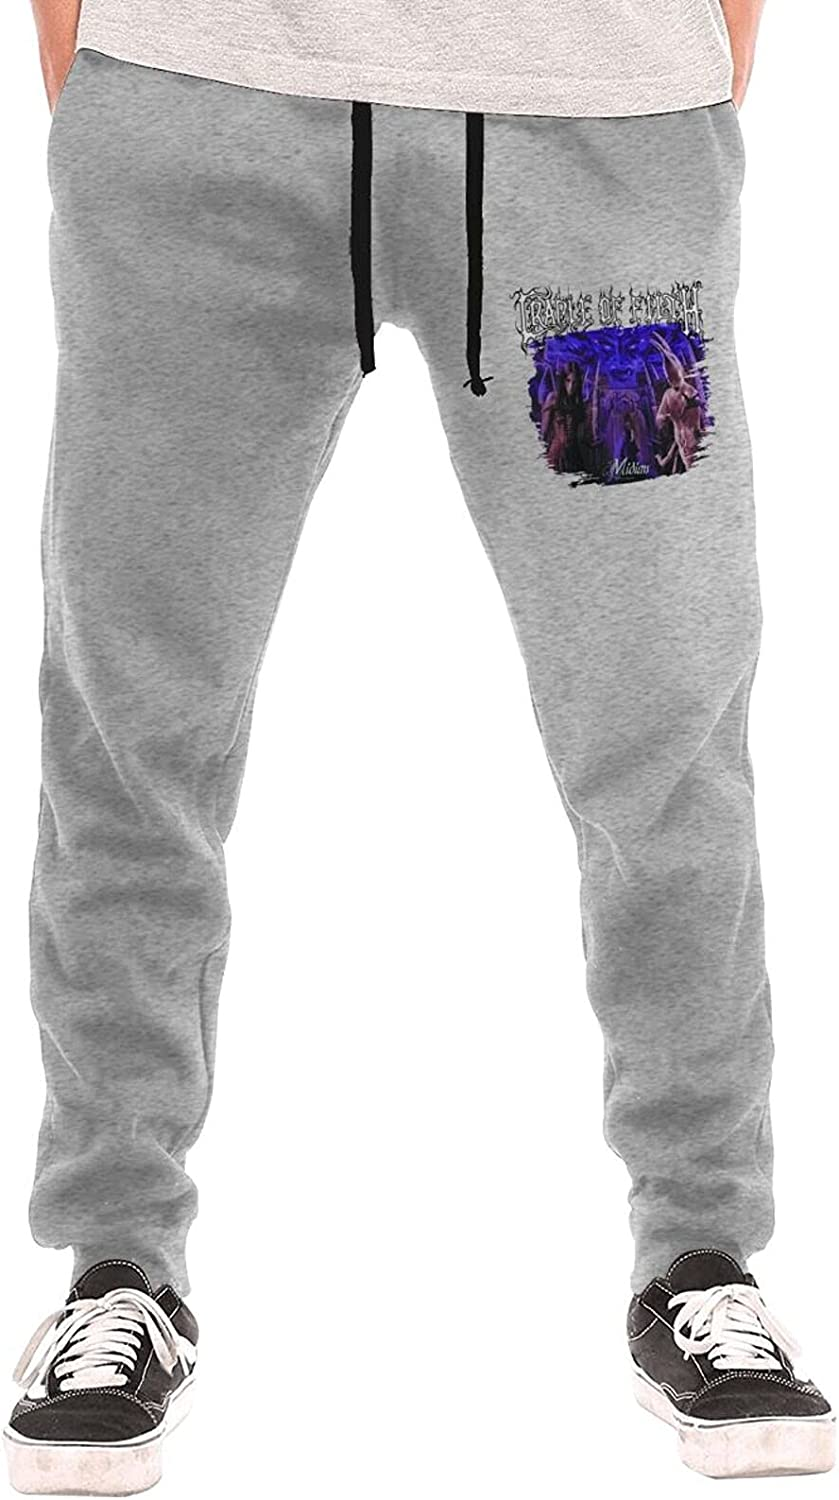 RandyDPeter Cradle of Filth Midian Man's Sweatpants Cool Jogger Pants Long Pant with Pocket for